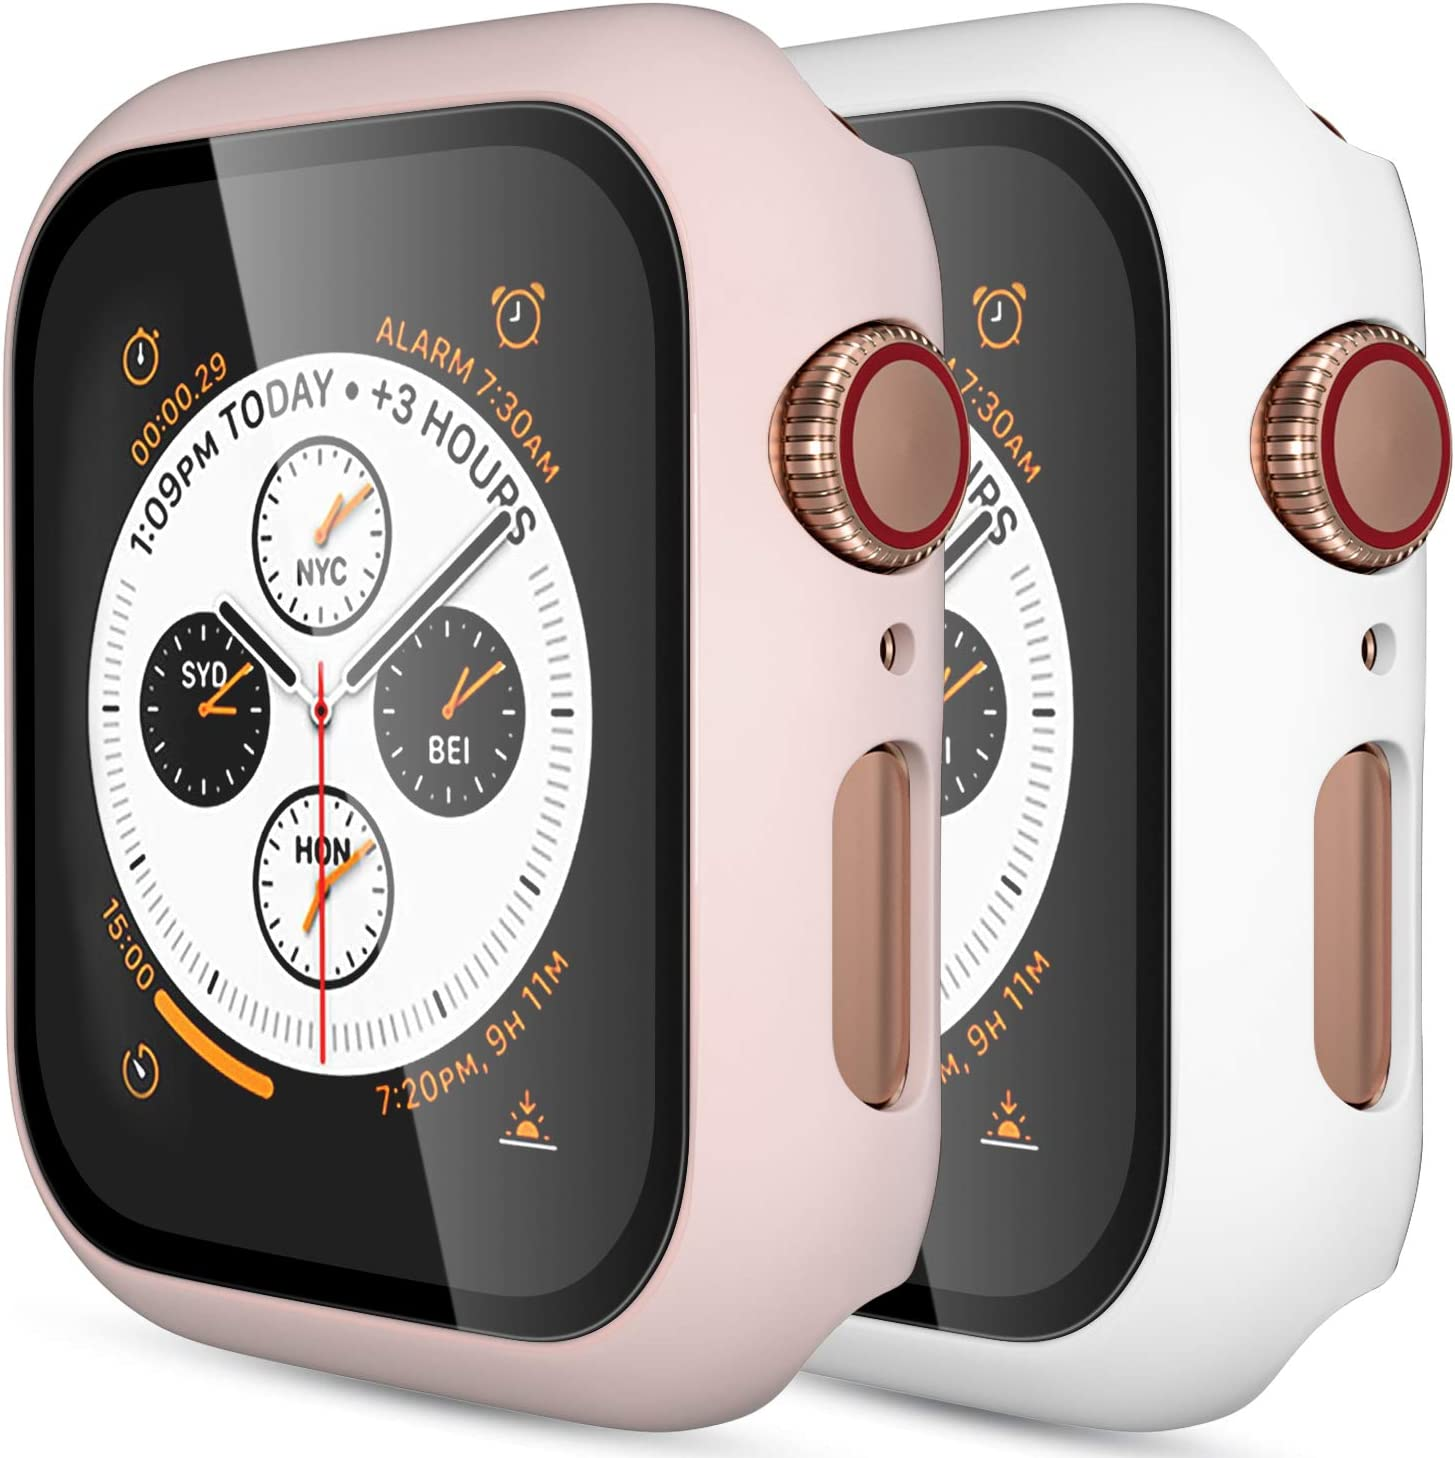 (2 Pack) GEAK Hard Case for Apple Watch 42mm Series 3 with Screen Protector, Full Body Protective Bumper Case Cover for iWatch Series 2/1, Matte White/Matte Pink